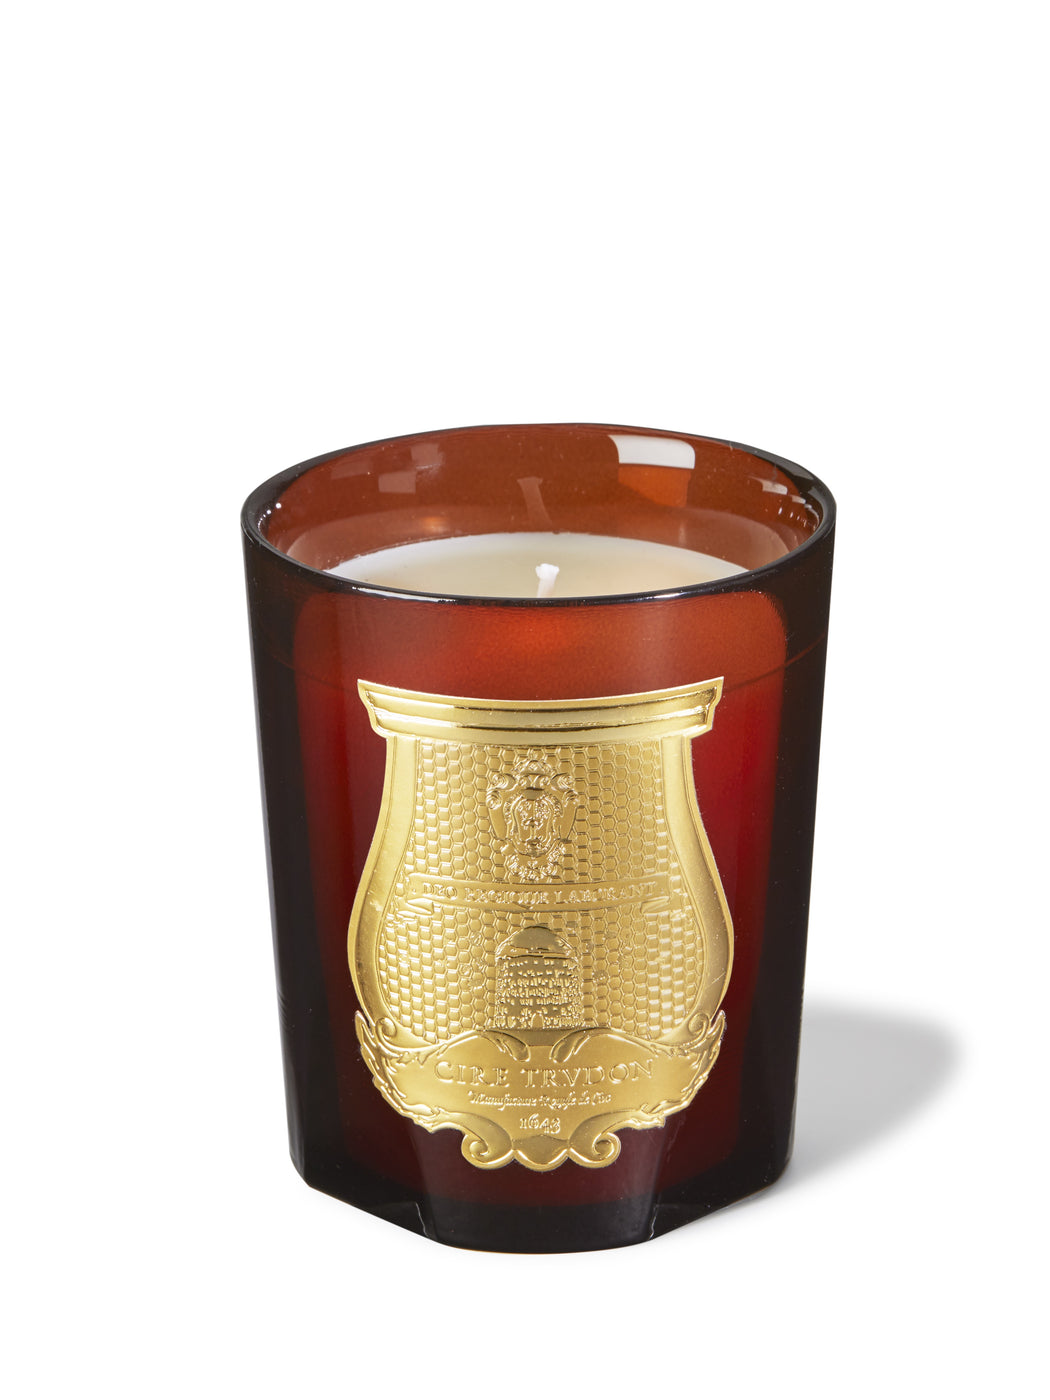 CIRE TRUDON CANDLE 270g CIRE Limited Edition